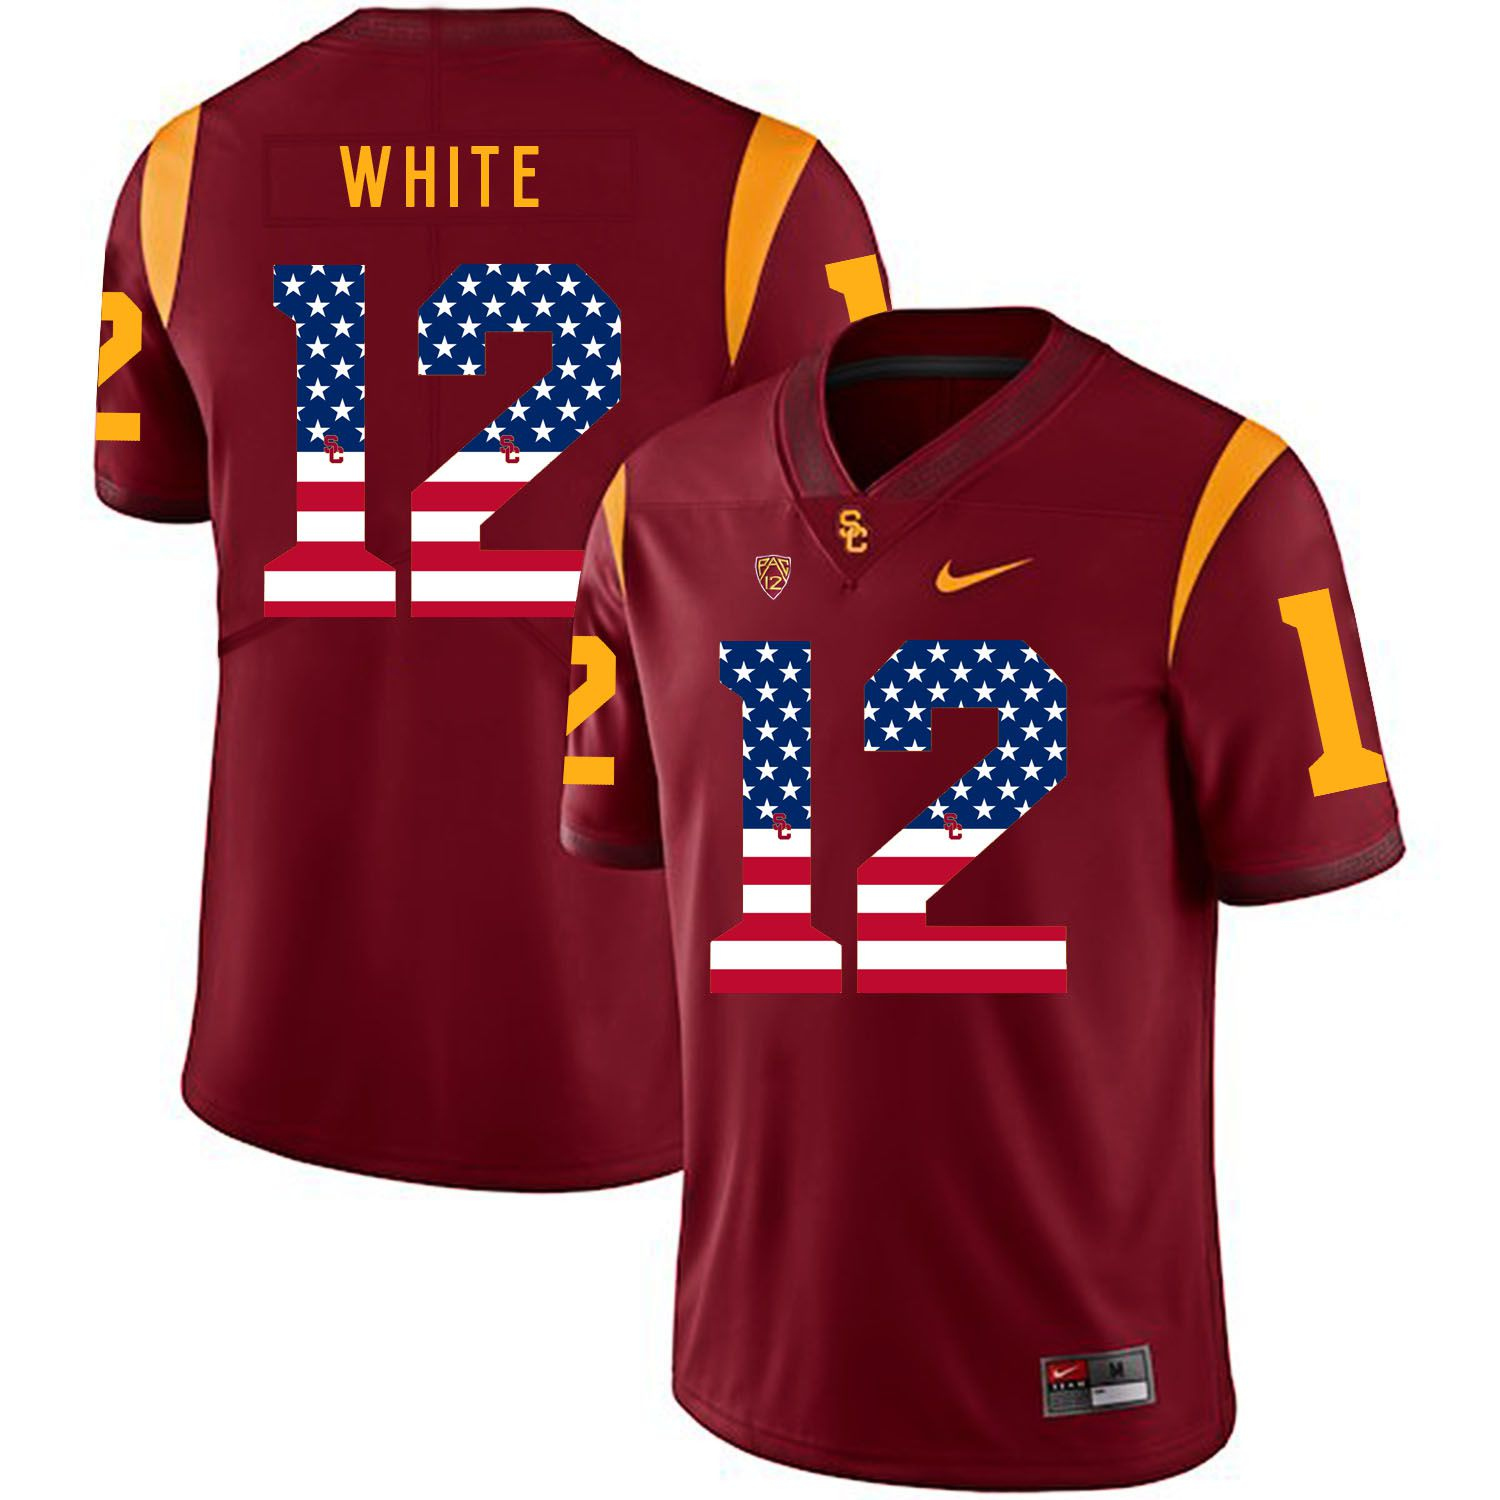 Men USC Trojans 12 White Red Flag Customized NCAA Jerseys